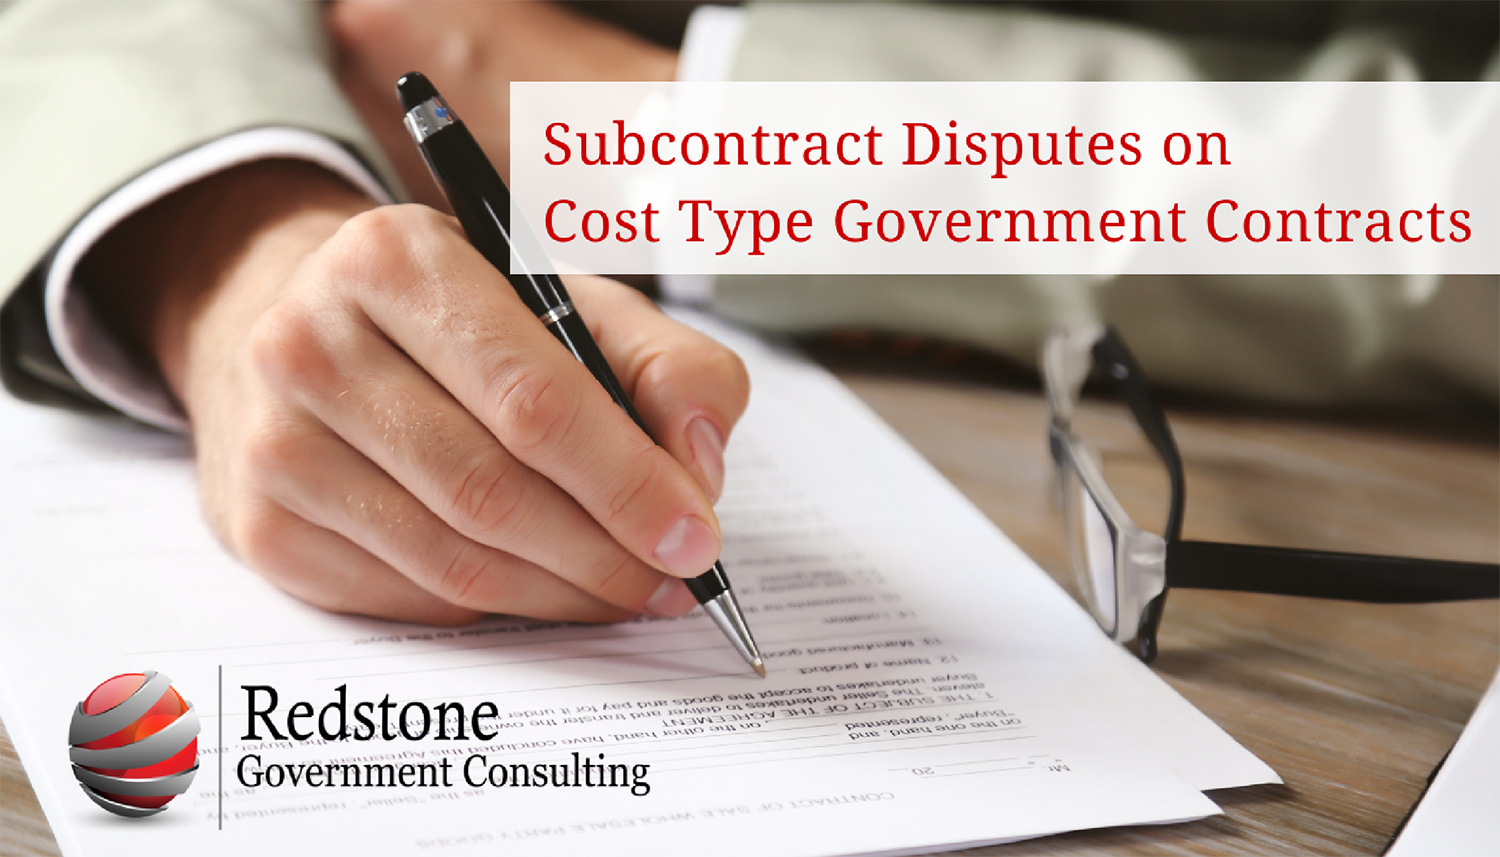 Redstone-Subcontract Disputes on Cost Type Government Contracts.png